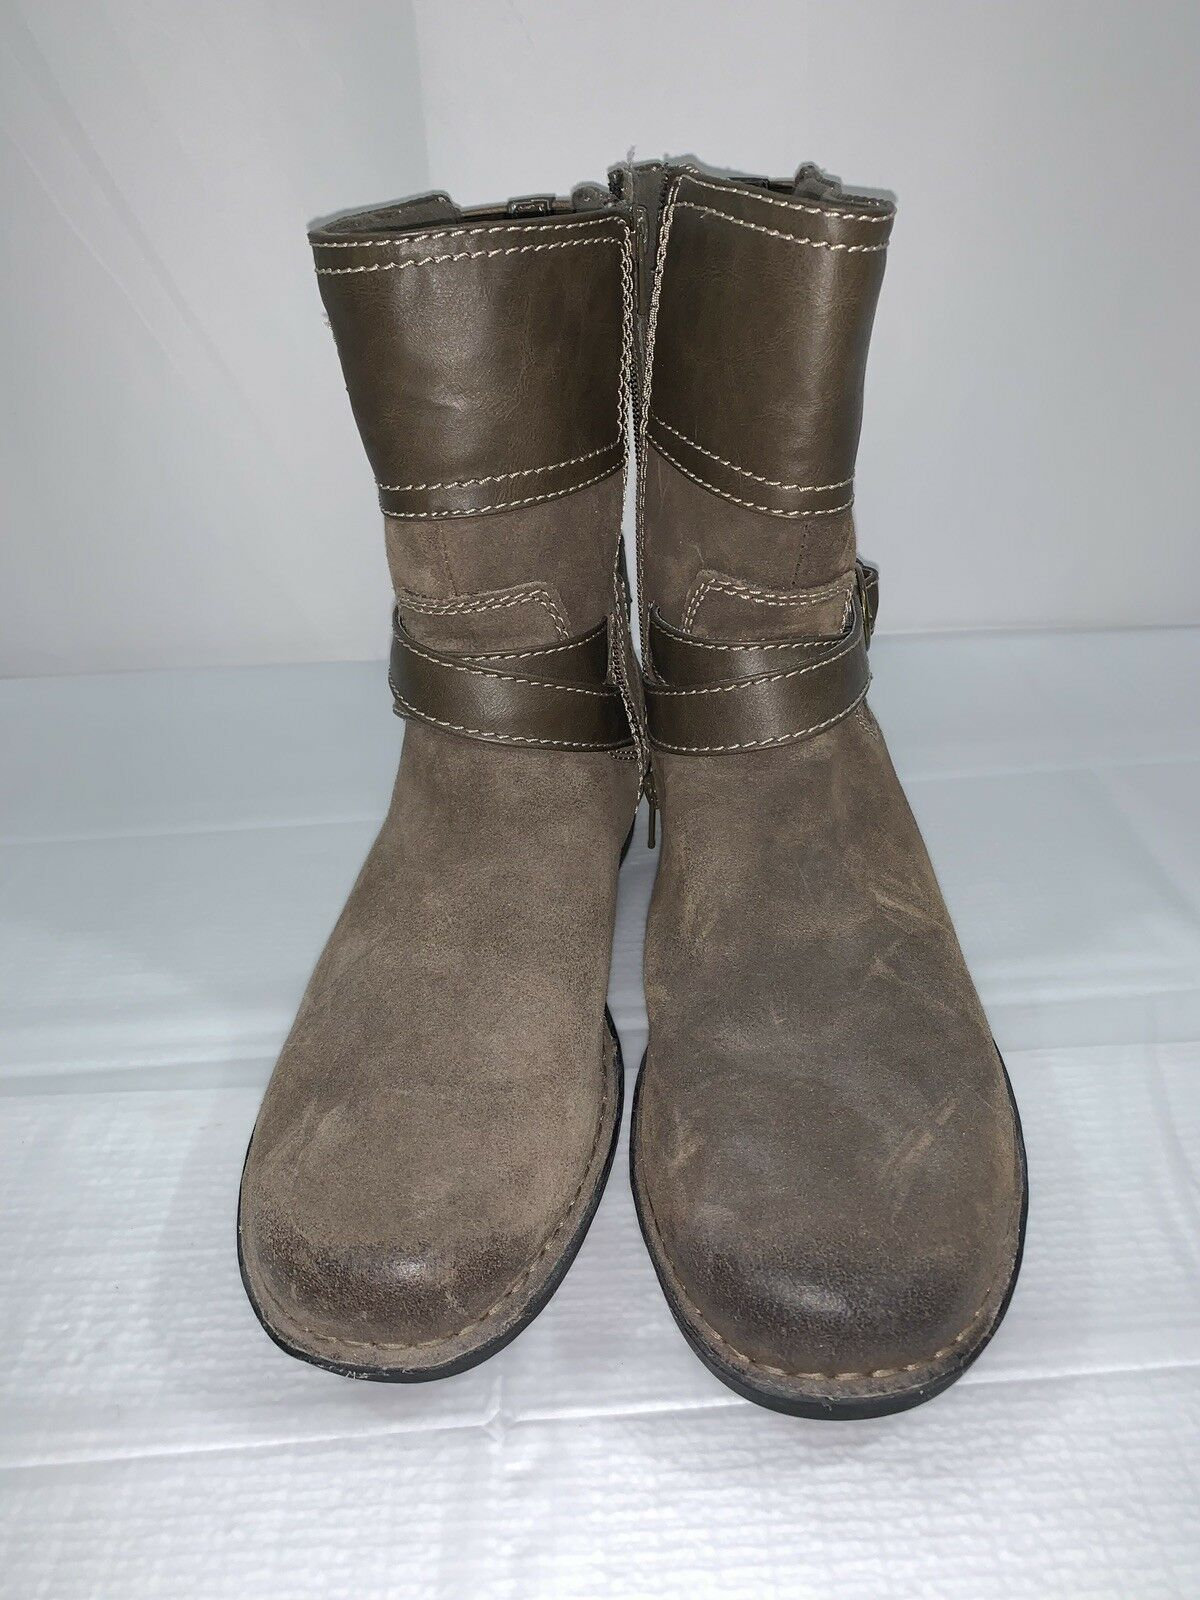 Clarks 26067151 Short Brown Boot L-11W  R-10W Brown Bootie shoes MISMATCH